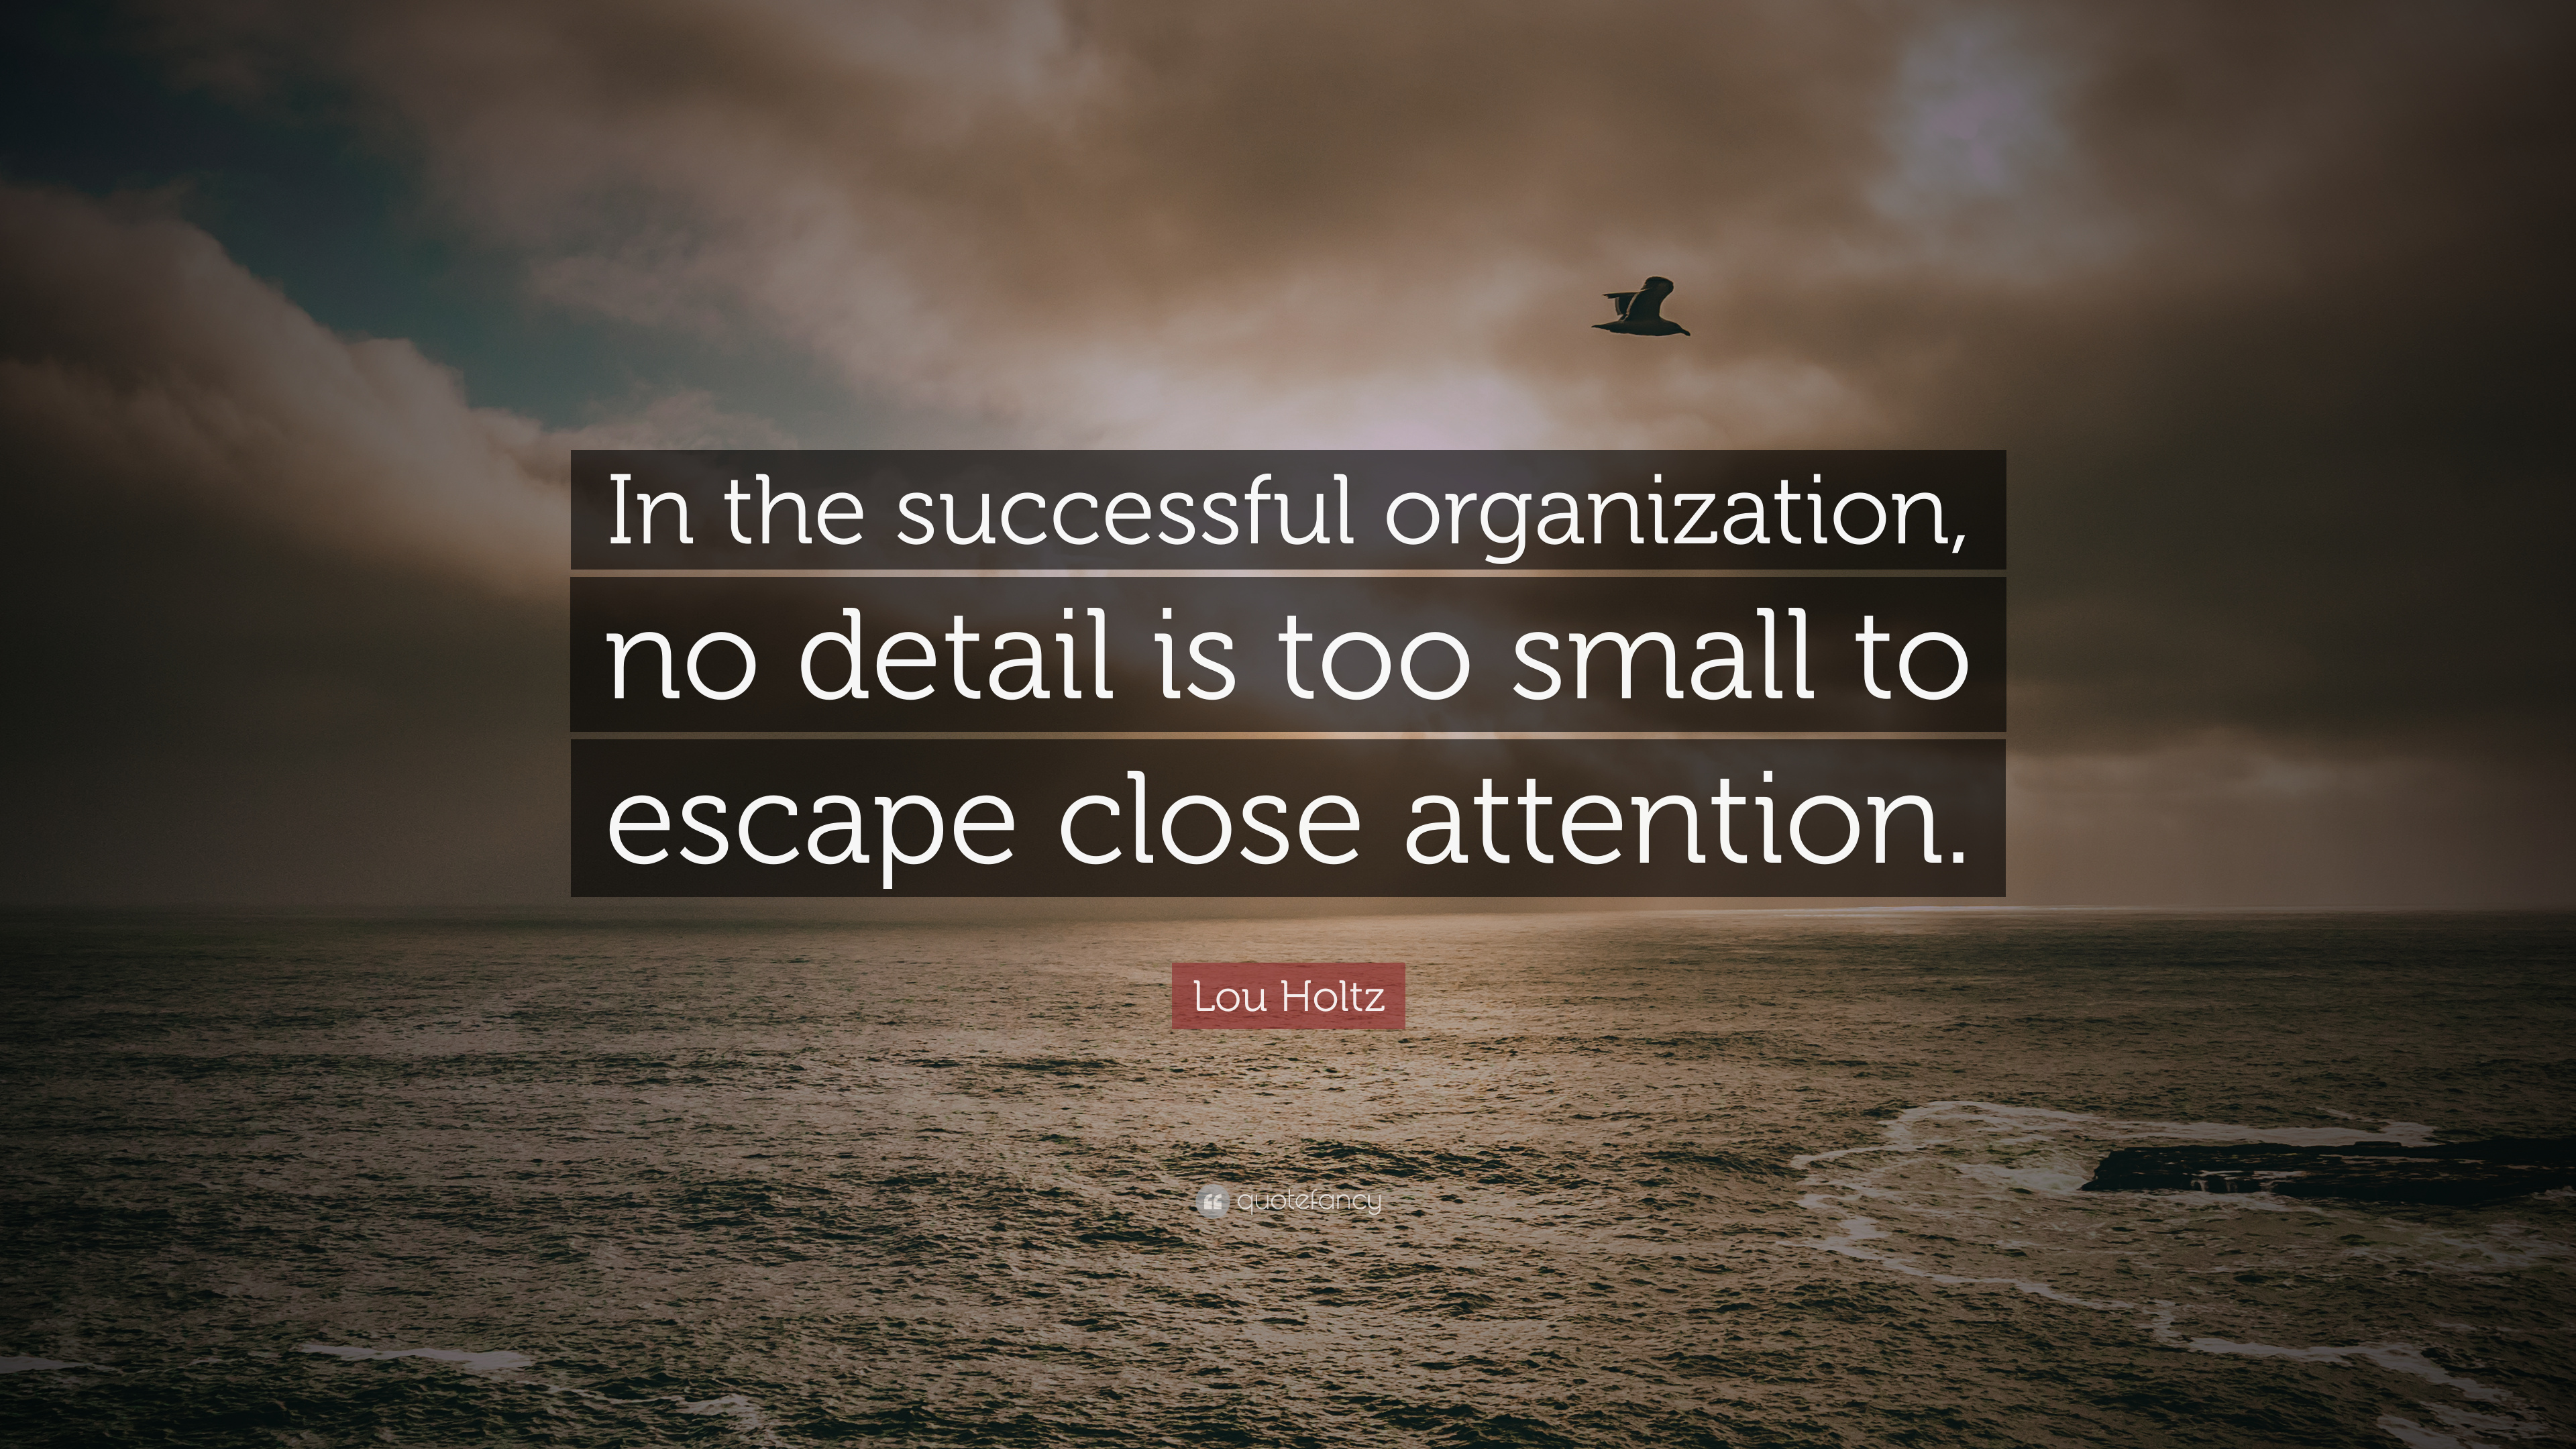 Lou Holtz Quote In The Successful Organization No Detail Is Too